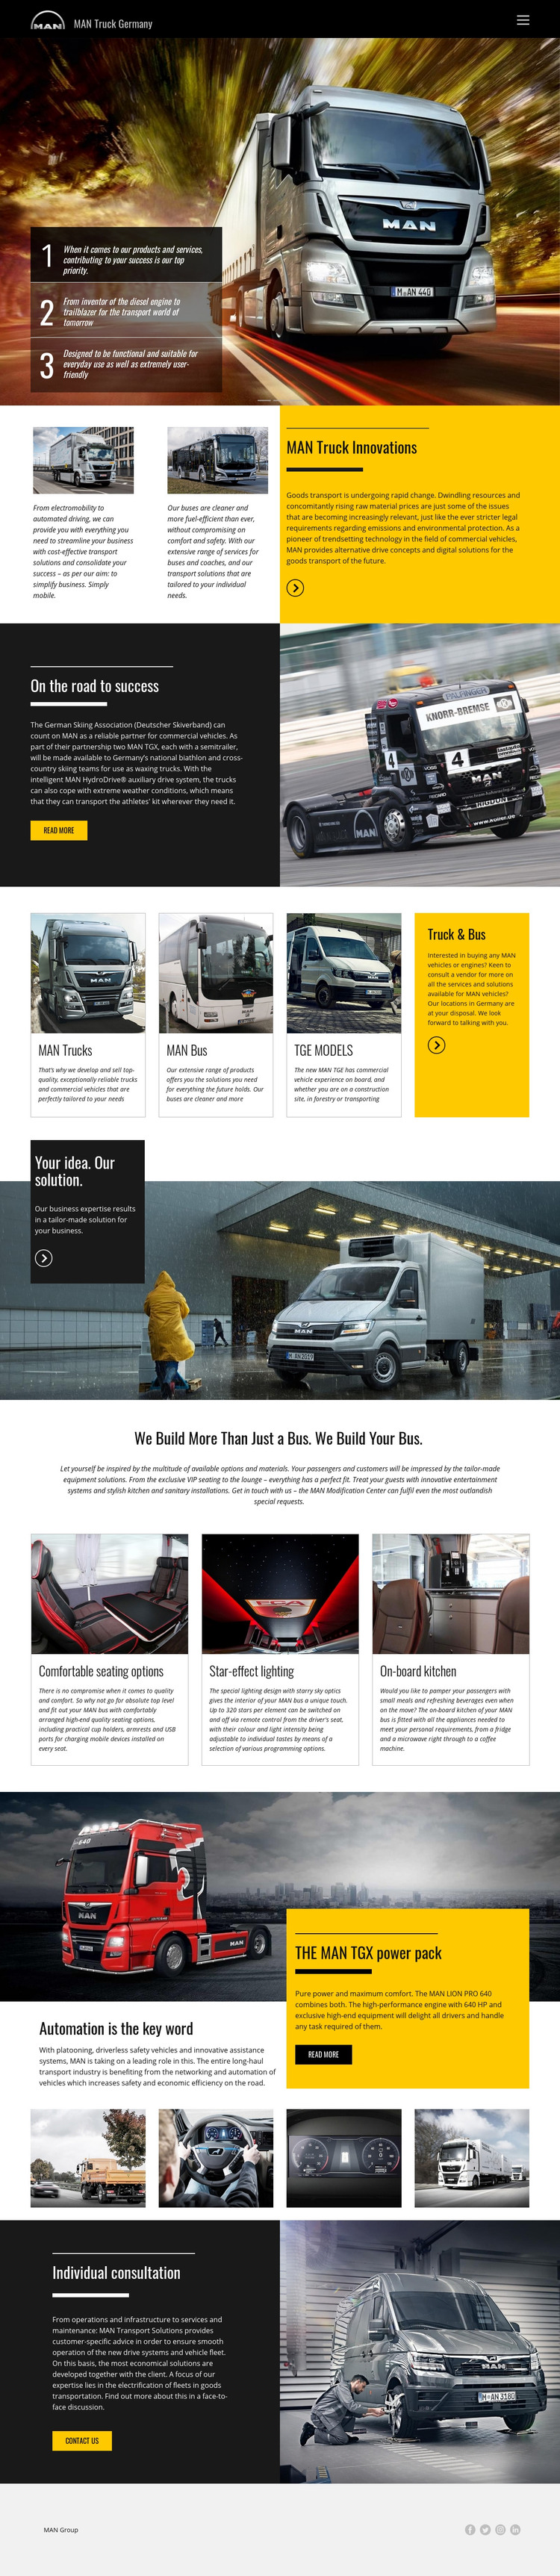 Man trucks for transportation Homepage Design